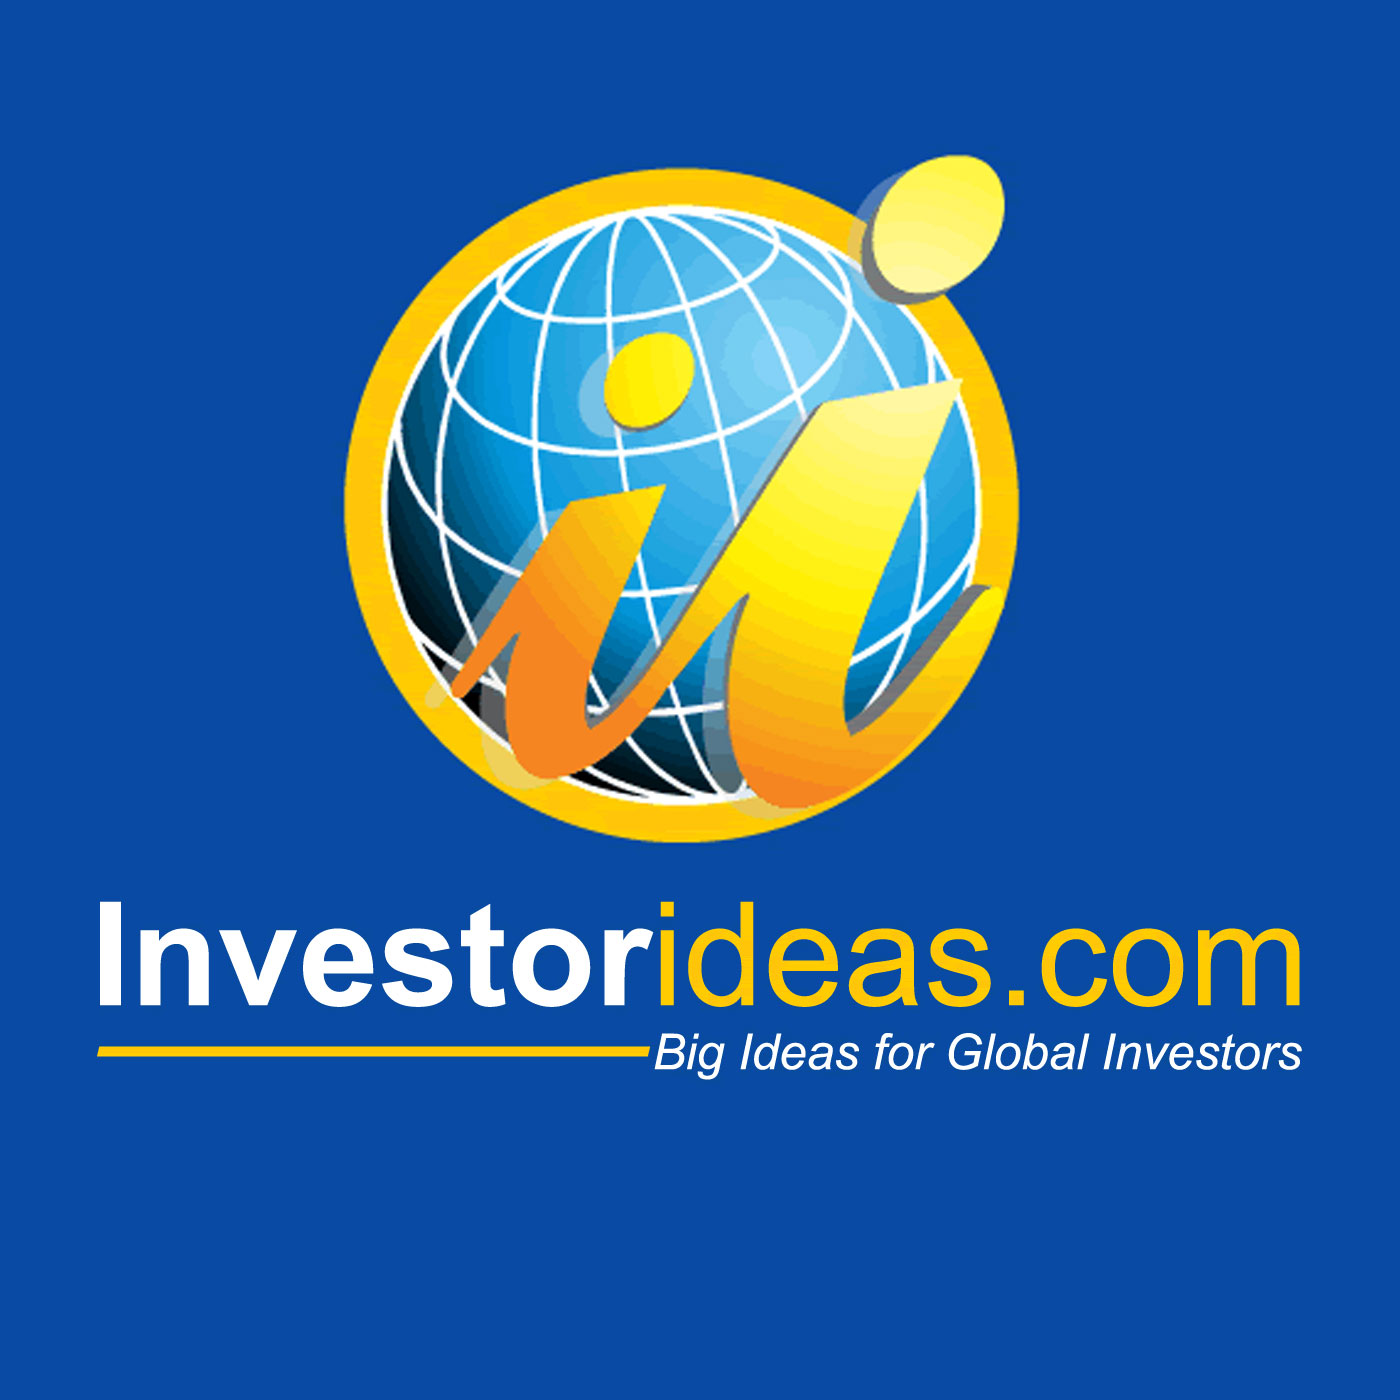 Investor Ideas Potcasts #555, Cannabis News and Stocks on the Move; (CSE: XTRX) (TSX: FAF) (CSE: AION) (CSE: IPOT) (OTC: ISCNF) (TSX: WEED) (NASDAQ: CGC)